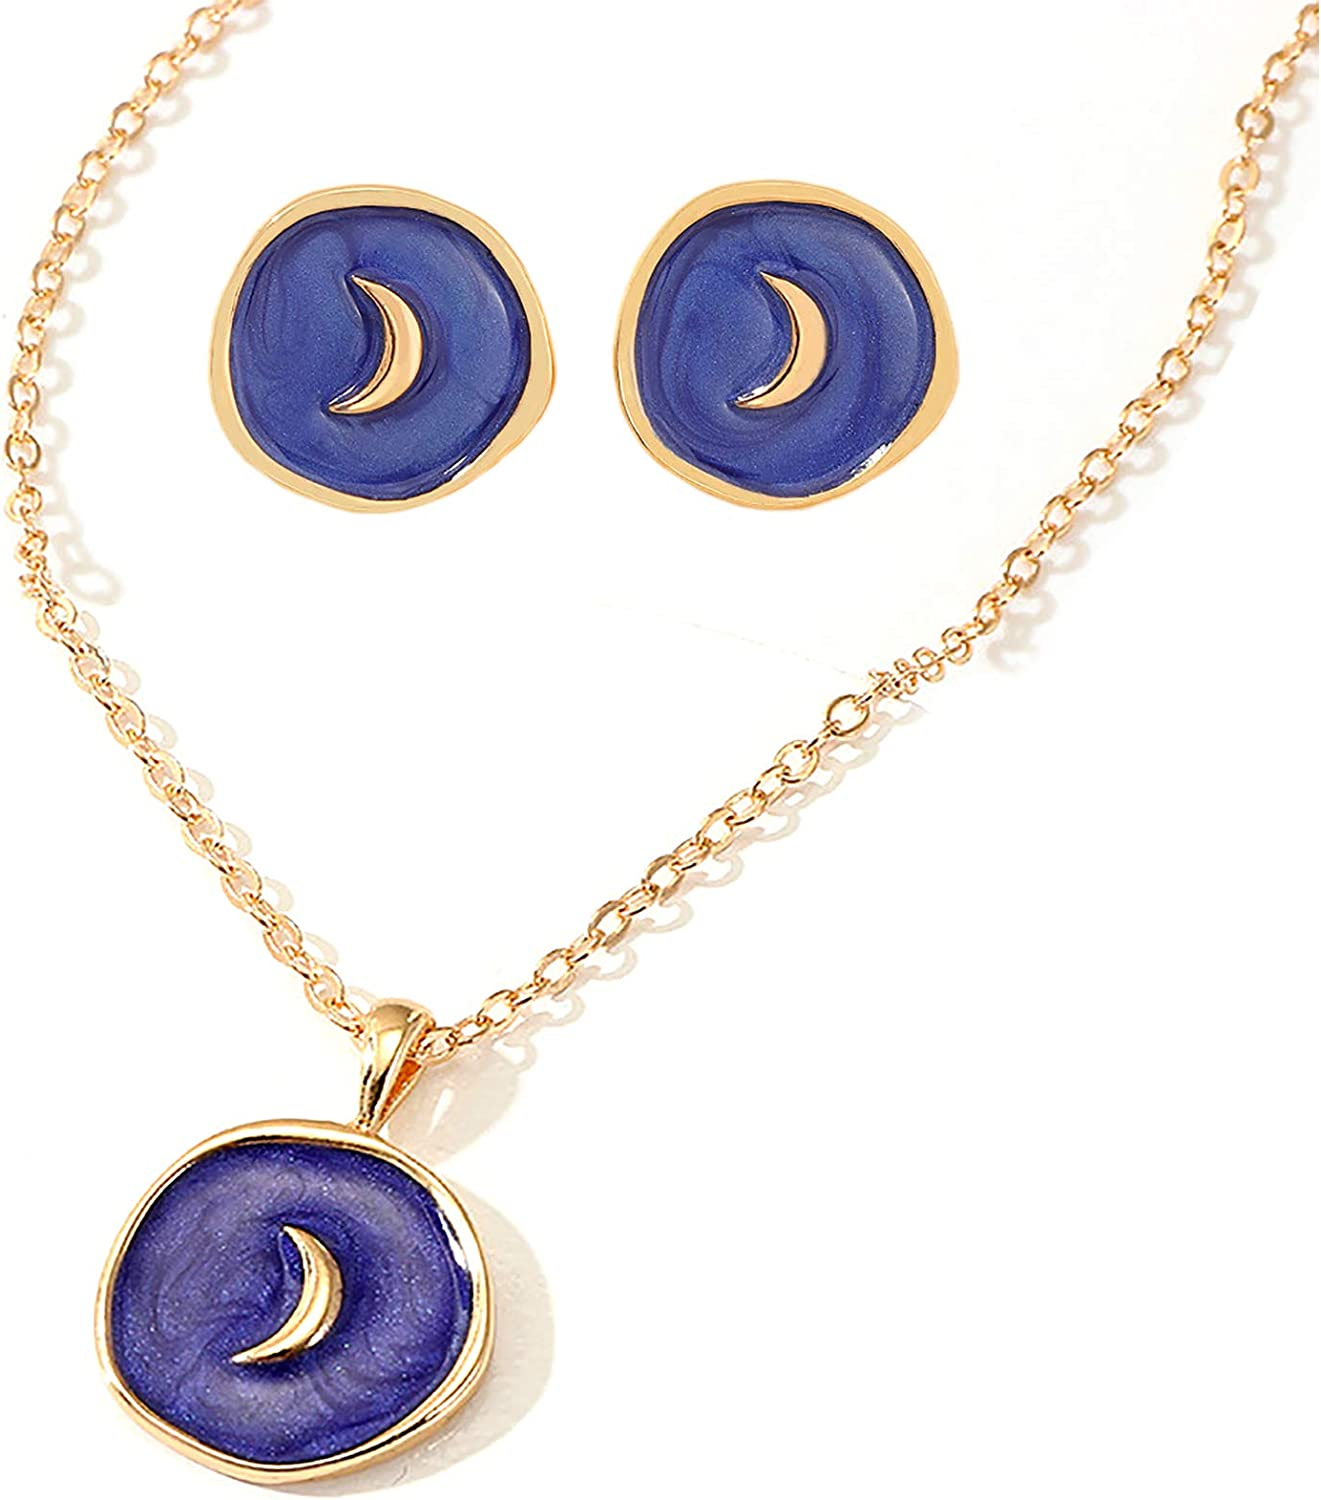 caiyao Colorful Moon Star Lightning Heart Enamel Round Pendant Adjustable Choker Necklace and Stud Earrings Set Delicate Friendship Sweet Lovely Jewelry for Women Girls